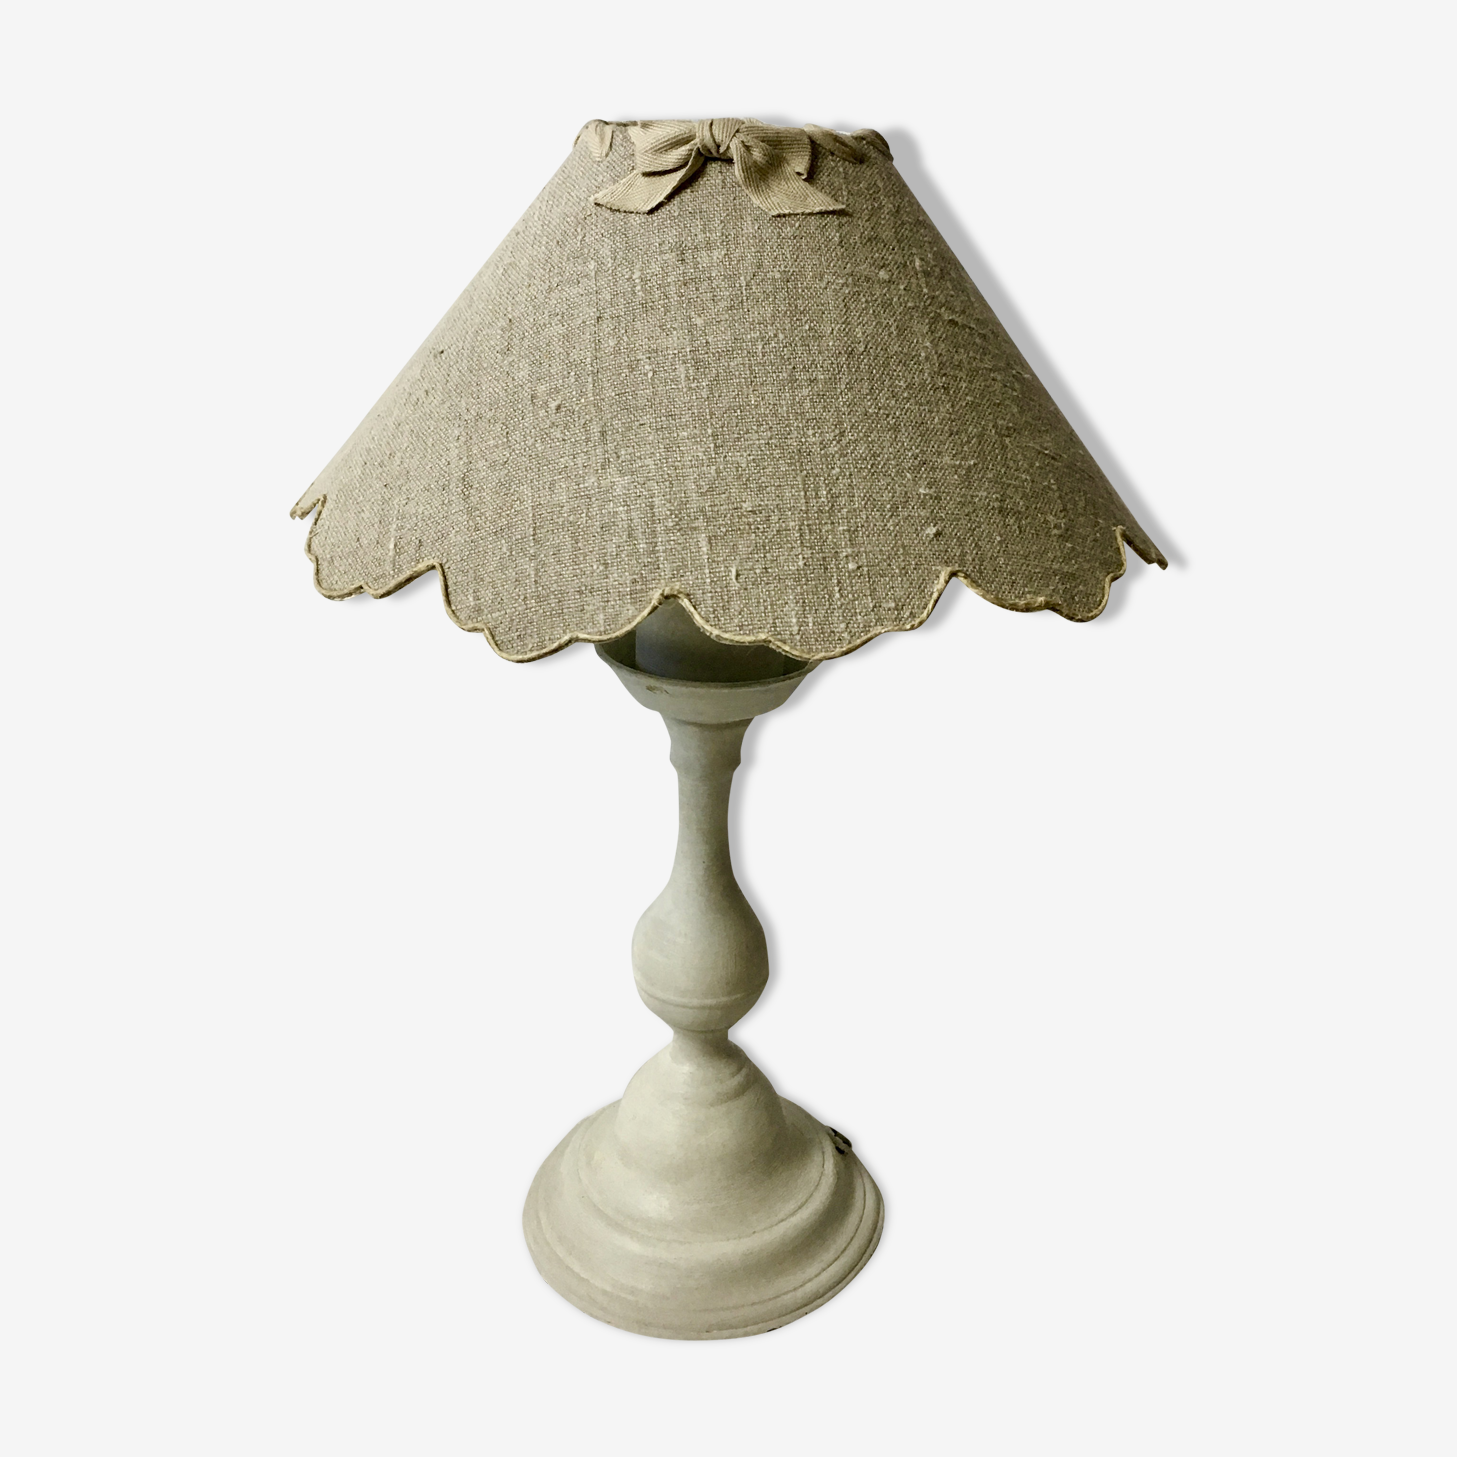 Lampe bougeoir patine gris clair shabby chic